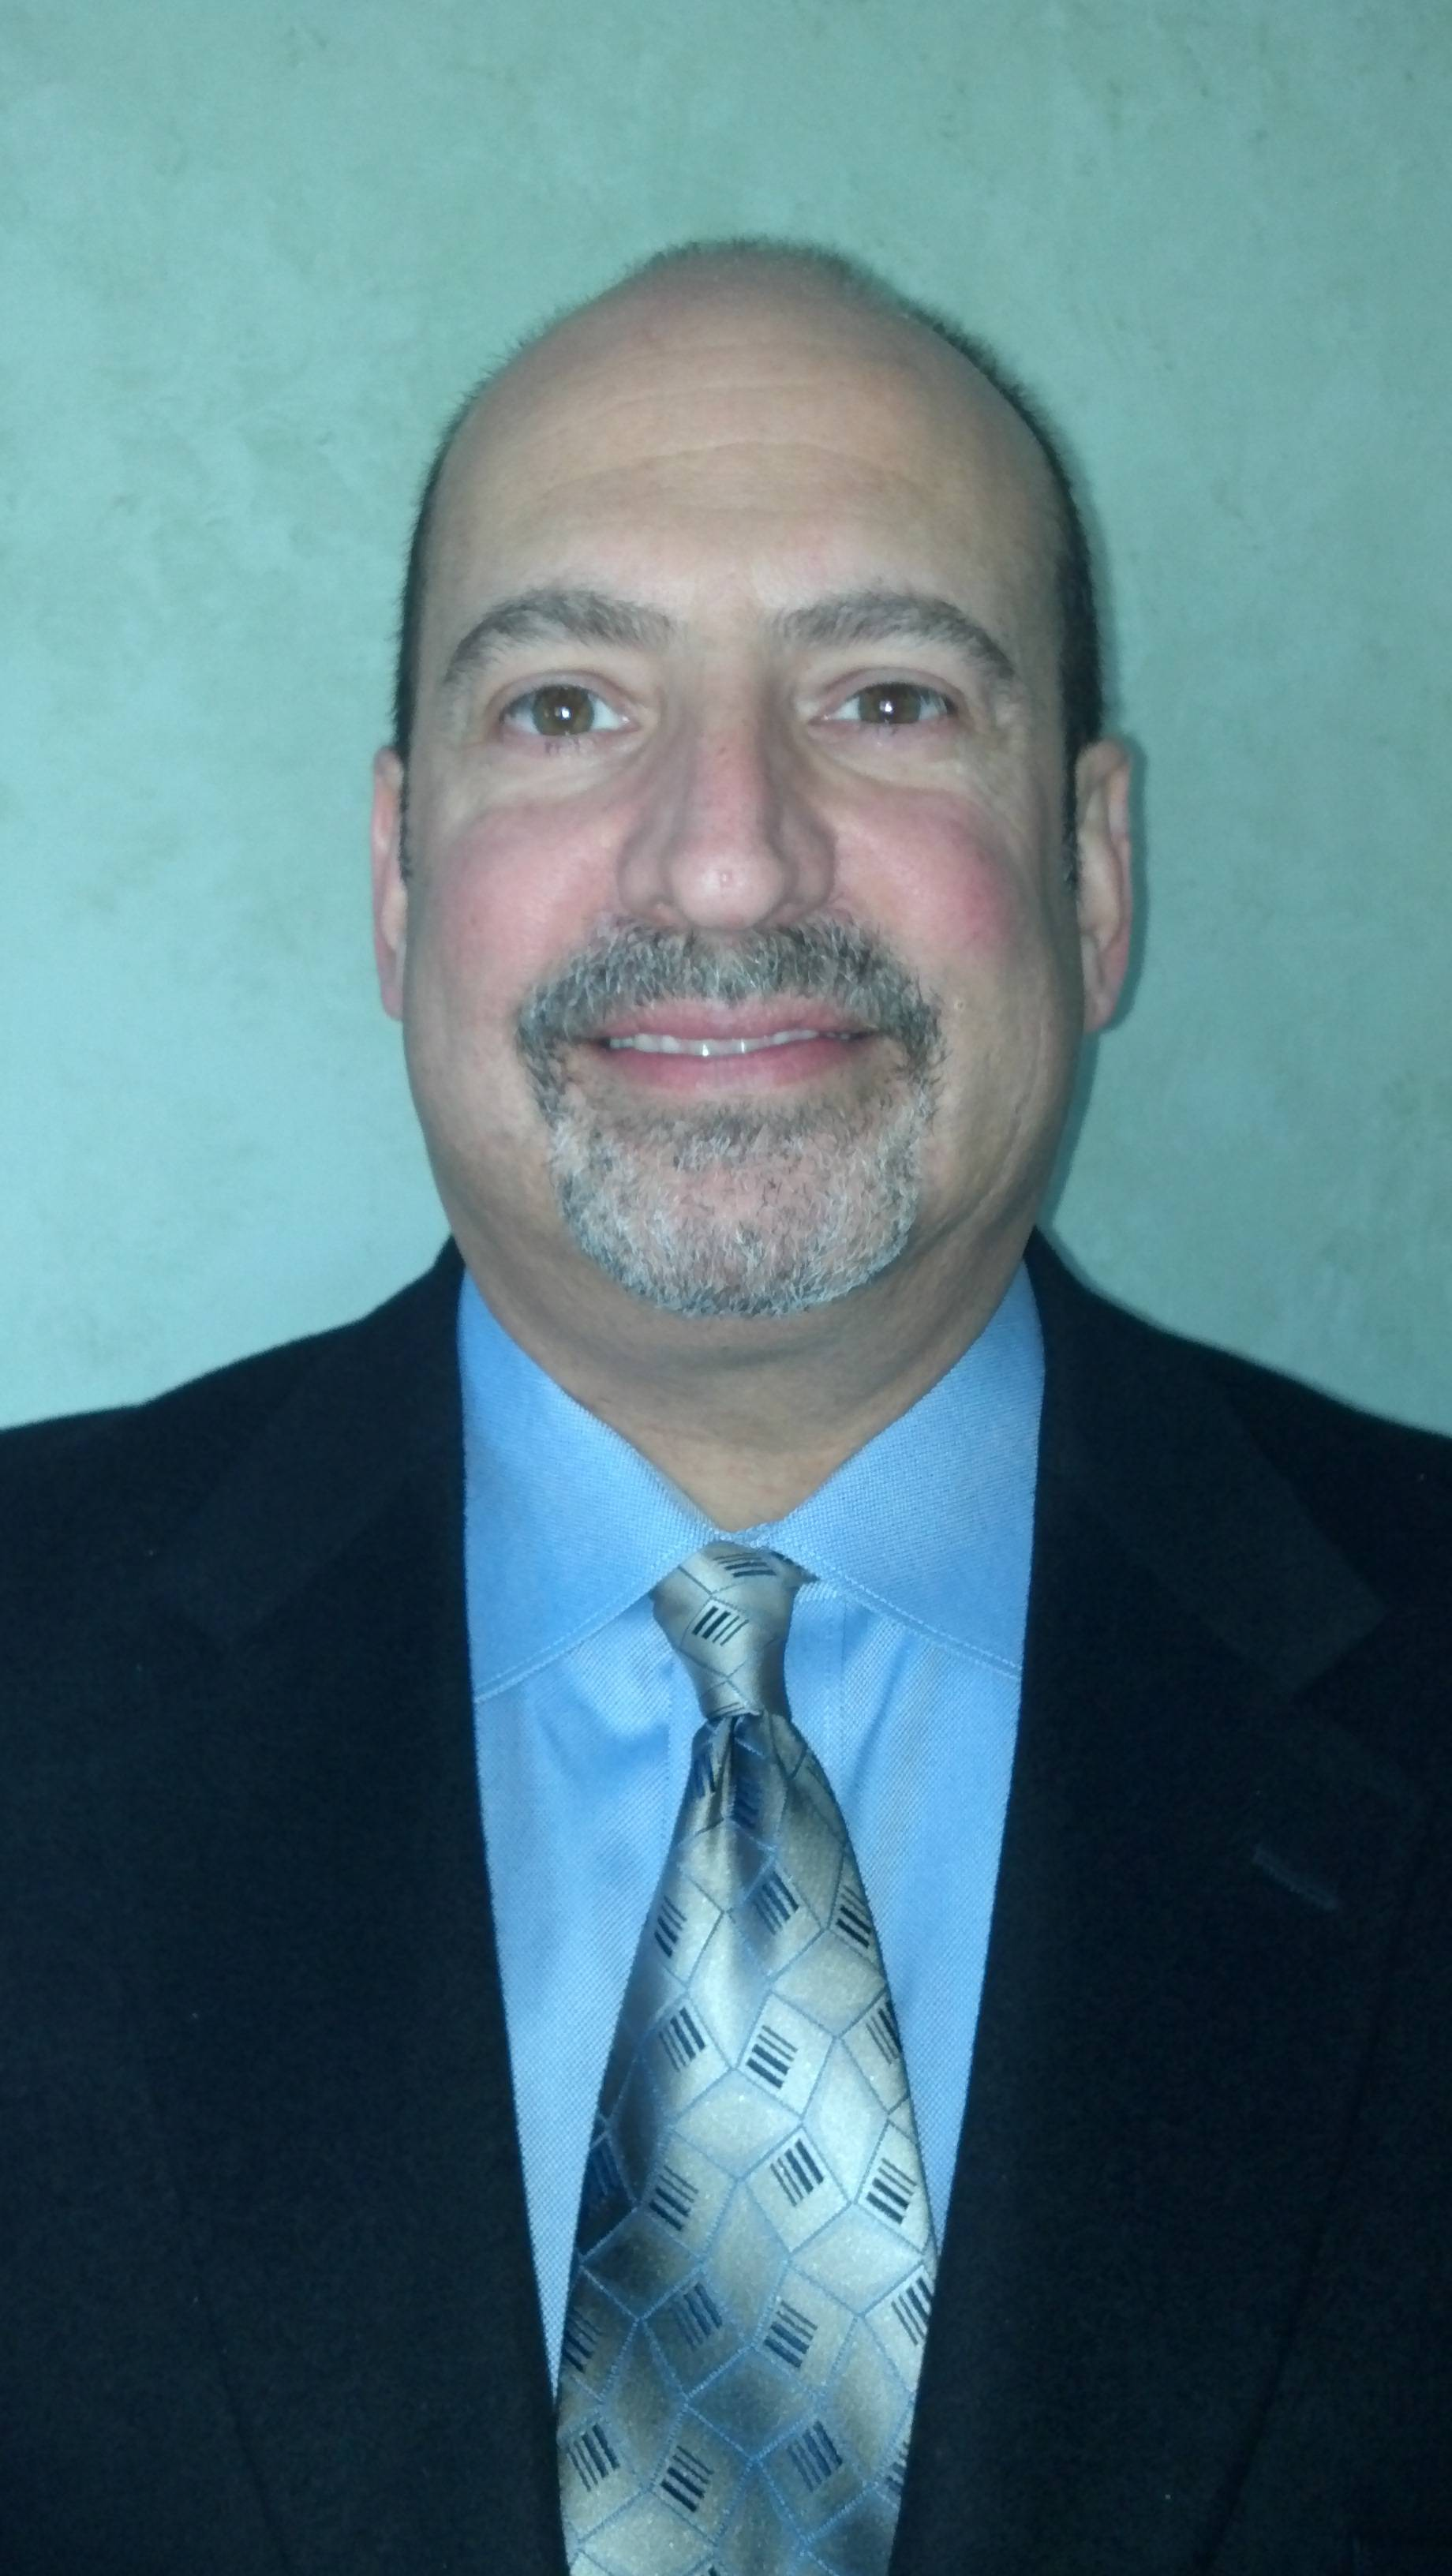 Frank Zak, running for Glen Ellyn Elementary District 89 School Board (4-year Terms)